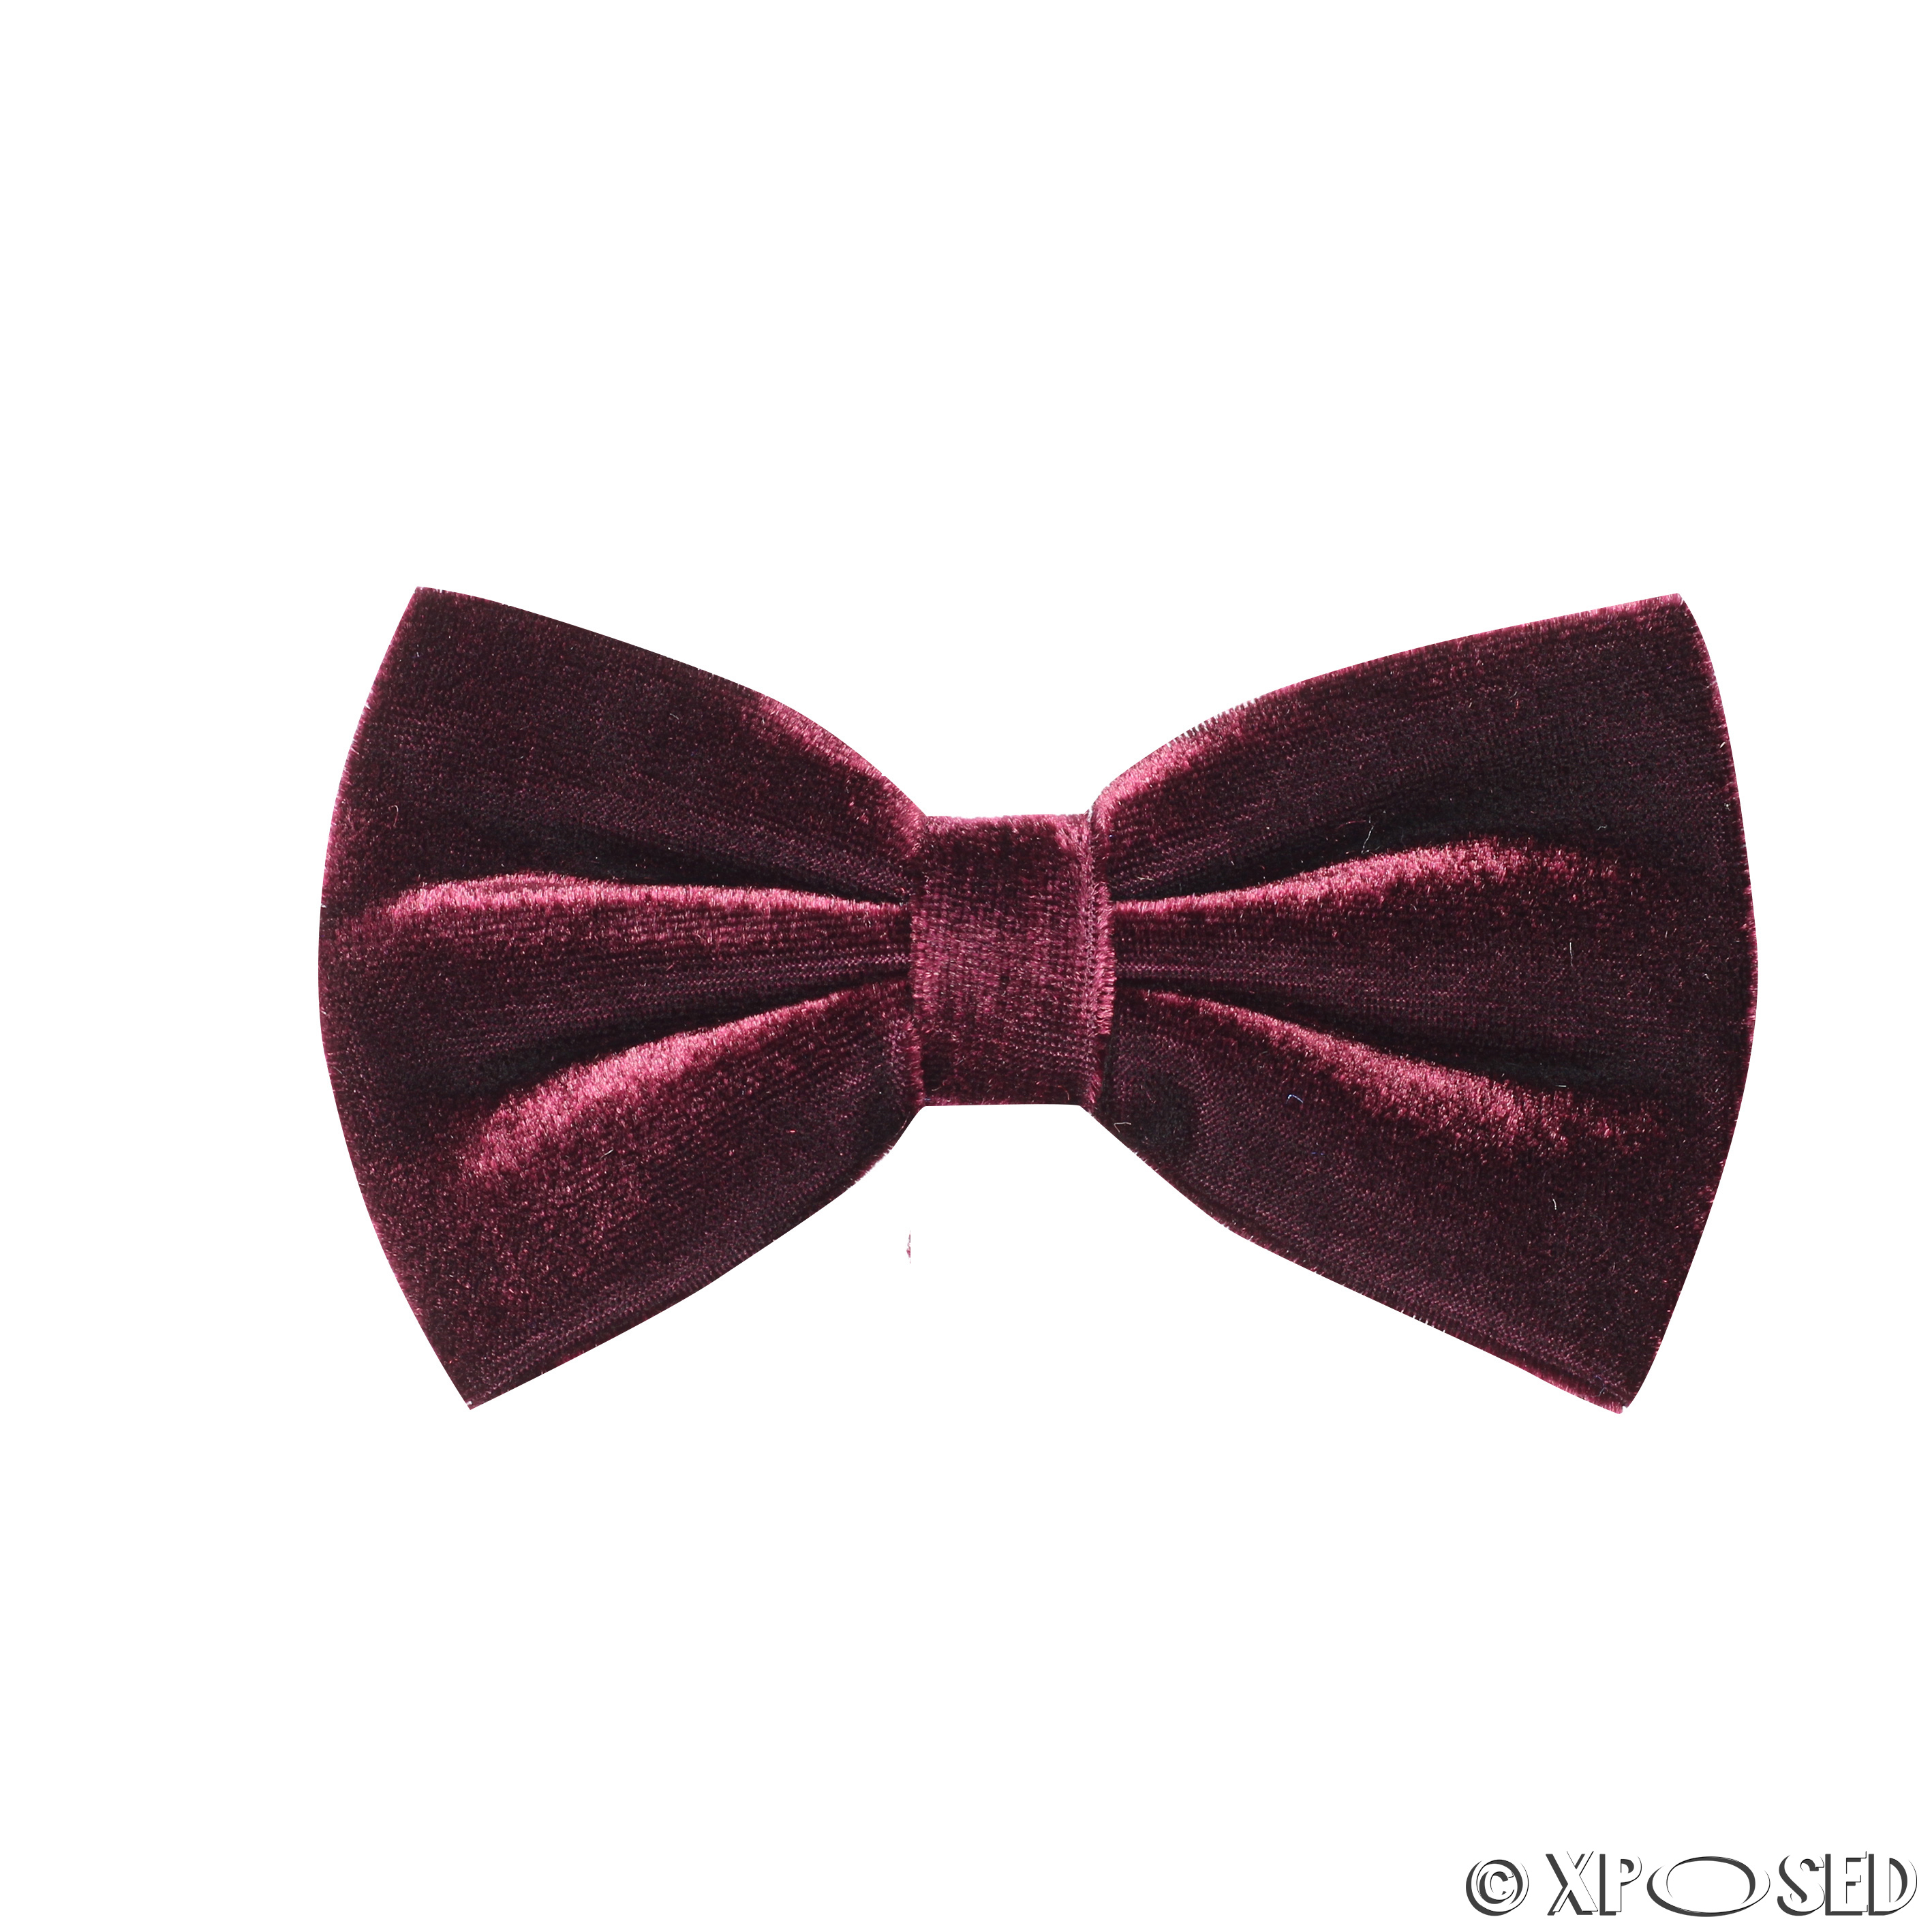 Shop for men's velvet bow tie online at Men's Wearhouse. Browse the latest velvet bow tie styles & selection from desire-date.tk, the leader in men's apparel. FREE Shipping on orders $99+!